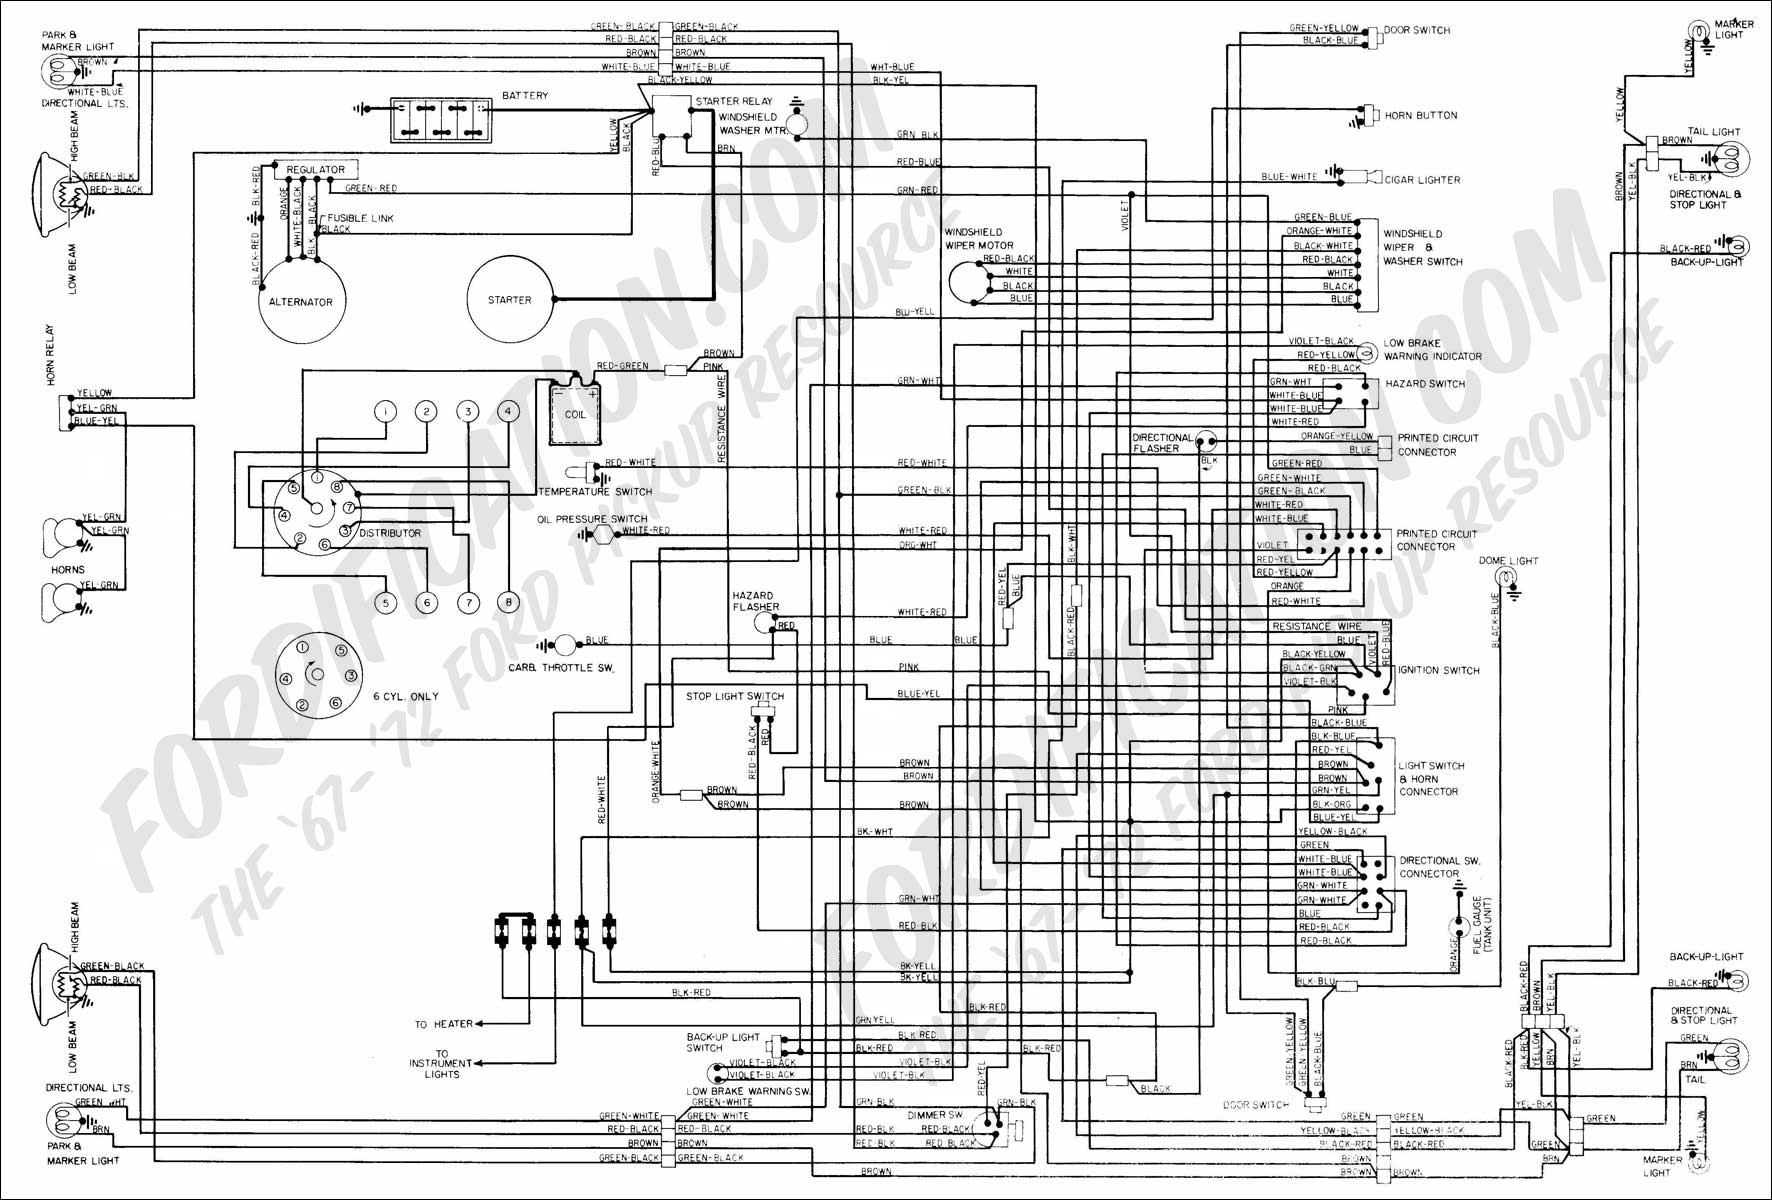 1972 F250 Cluster Diagram Wiring Library Blog The First Chevy Silverado Fuse Data Short Bed